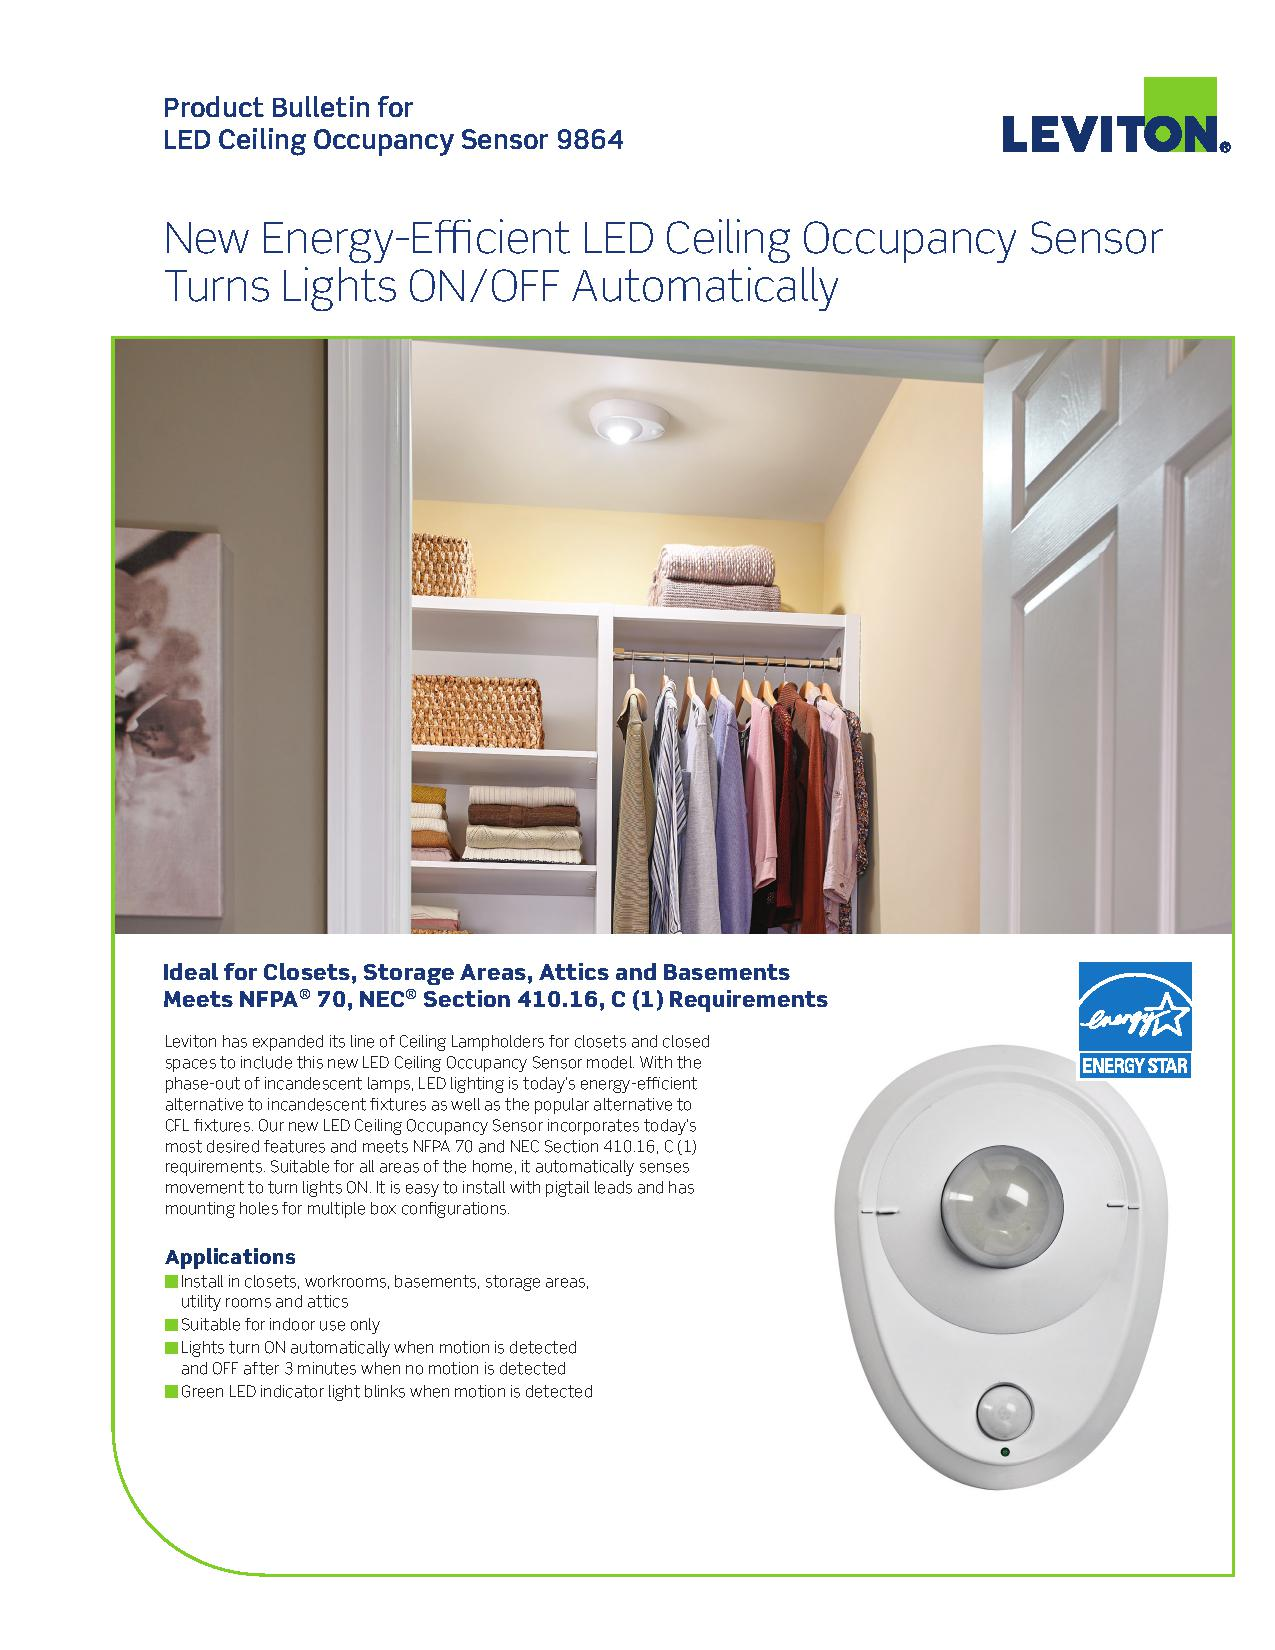 Leviton 9864 LED Closet Light with Occupancy Sensor | AJB Sales